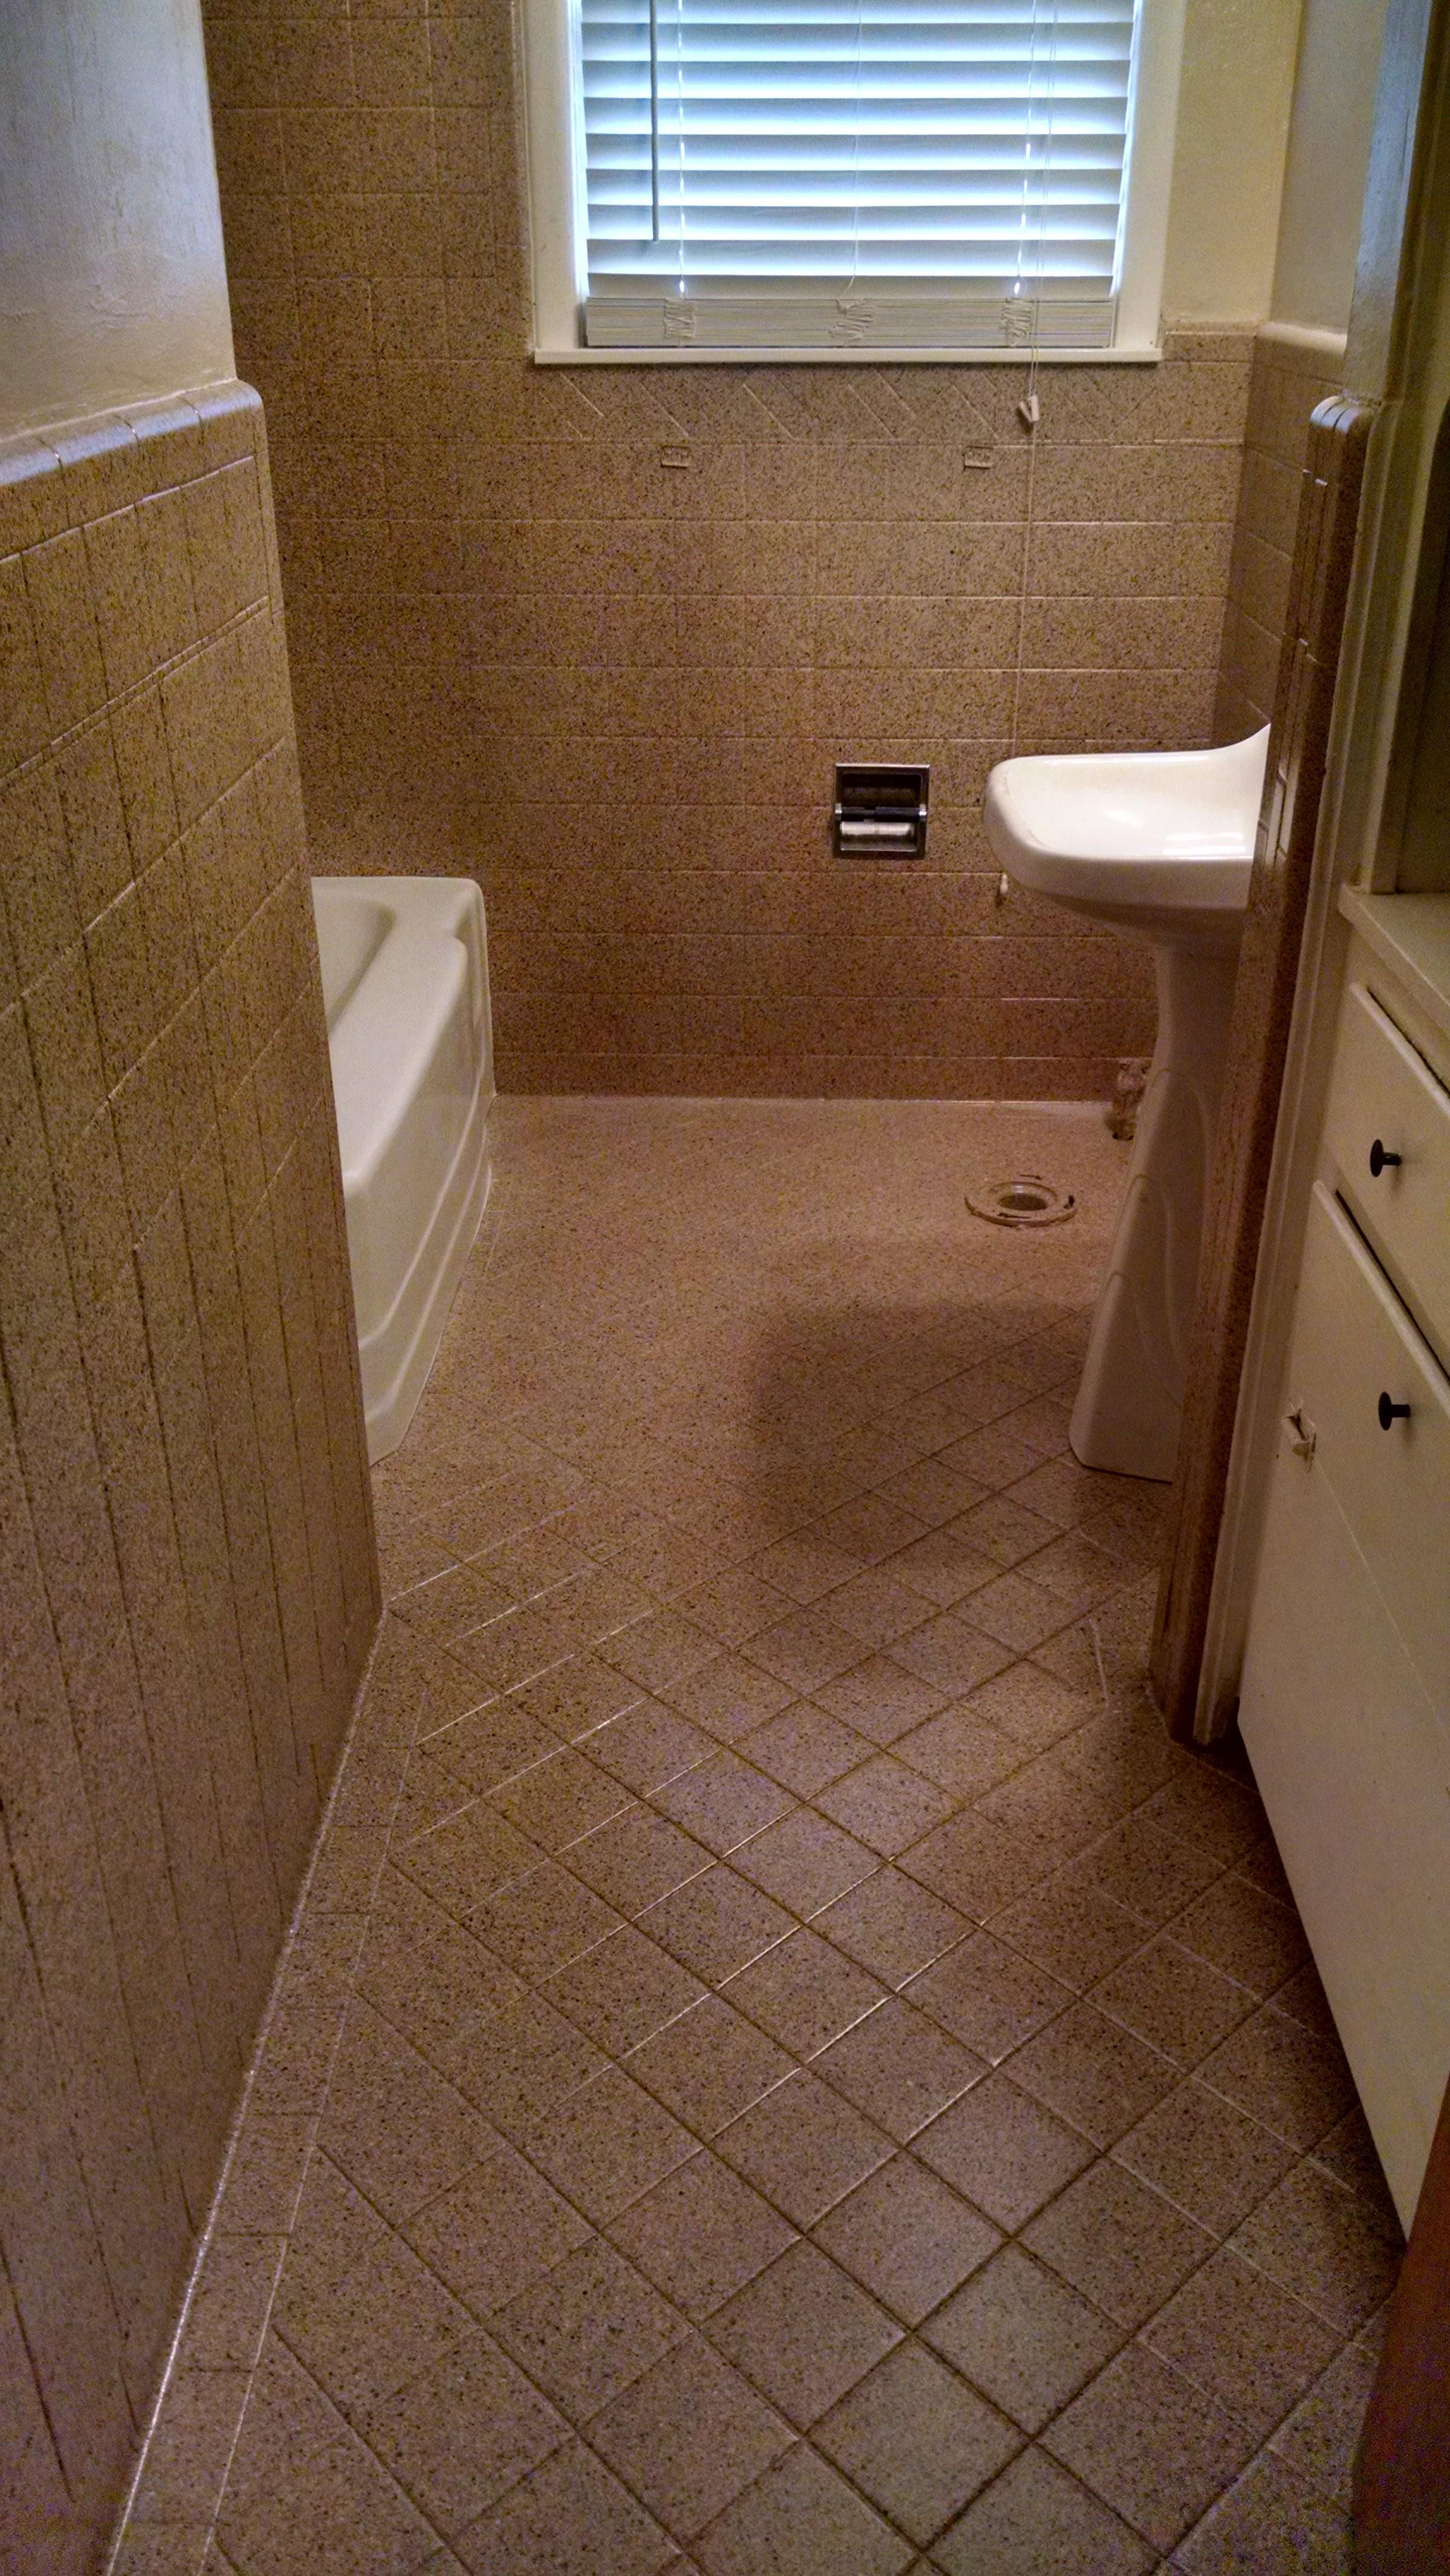 mapquest miracle tn courier countertops tops method counter us suite tennessee smyrna place